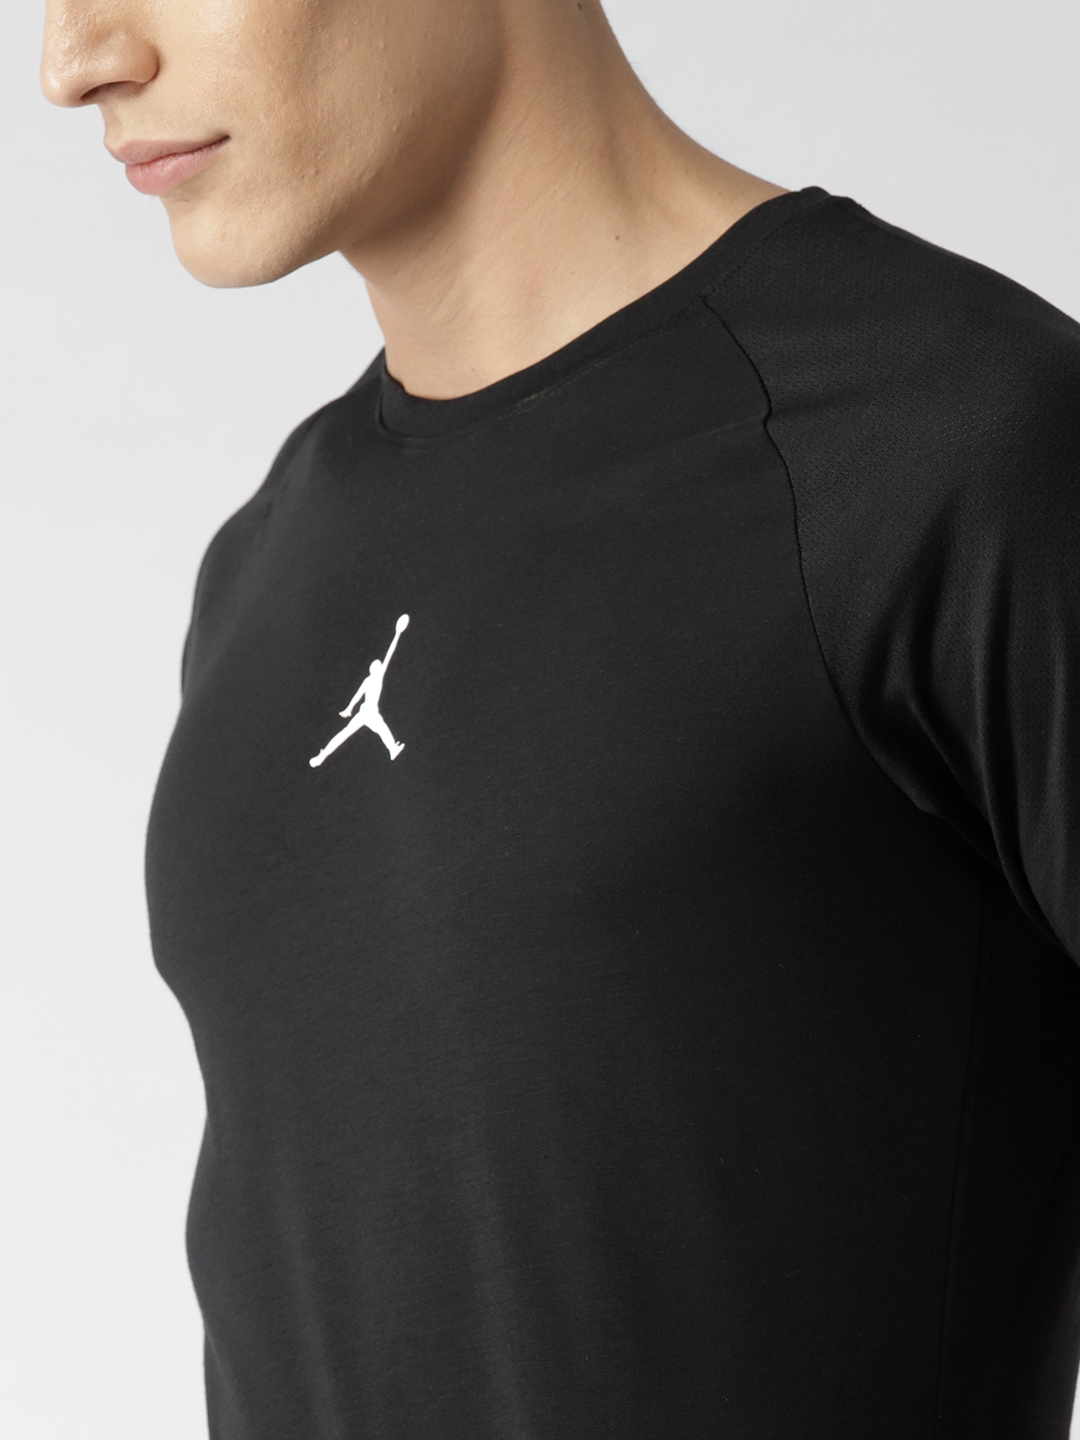 new concept 1ac79 720da Buy Nike Black Solid 23 ALPHA Dry SS Training T Shirt - Tshirts for ...